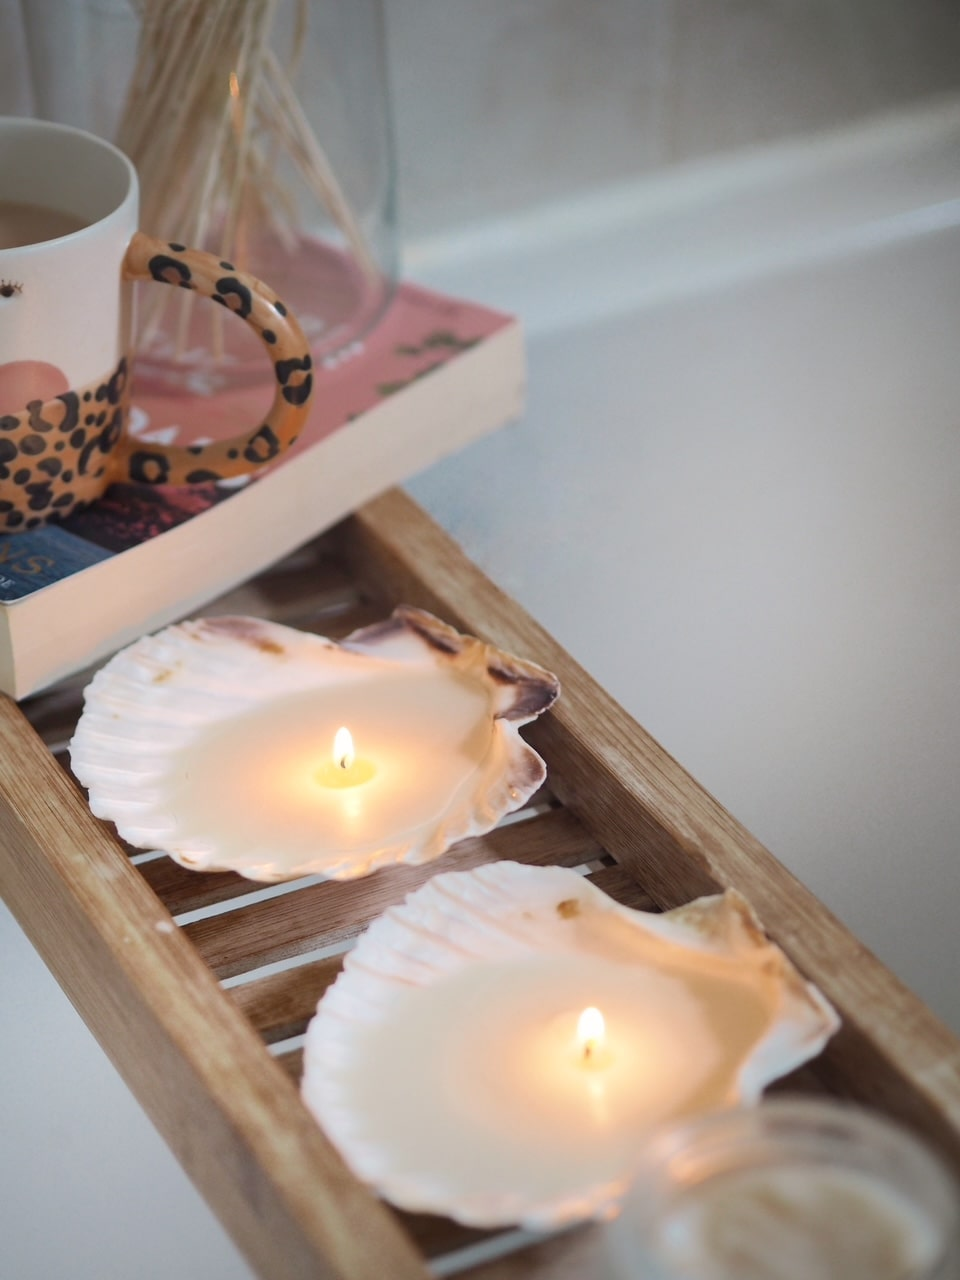 How to make your own DIY shell using wax and tea lights. Simple crafting project to create a stylish, budget candle for your home